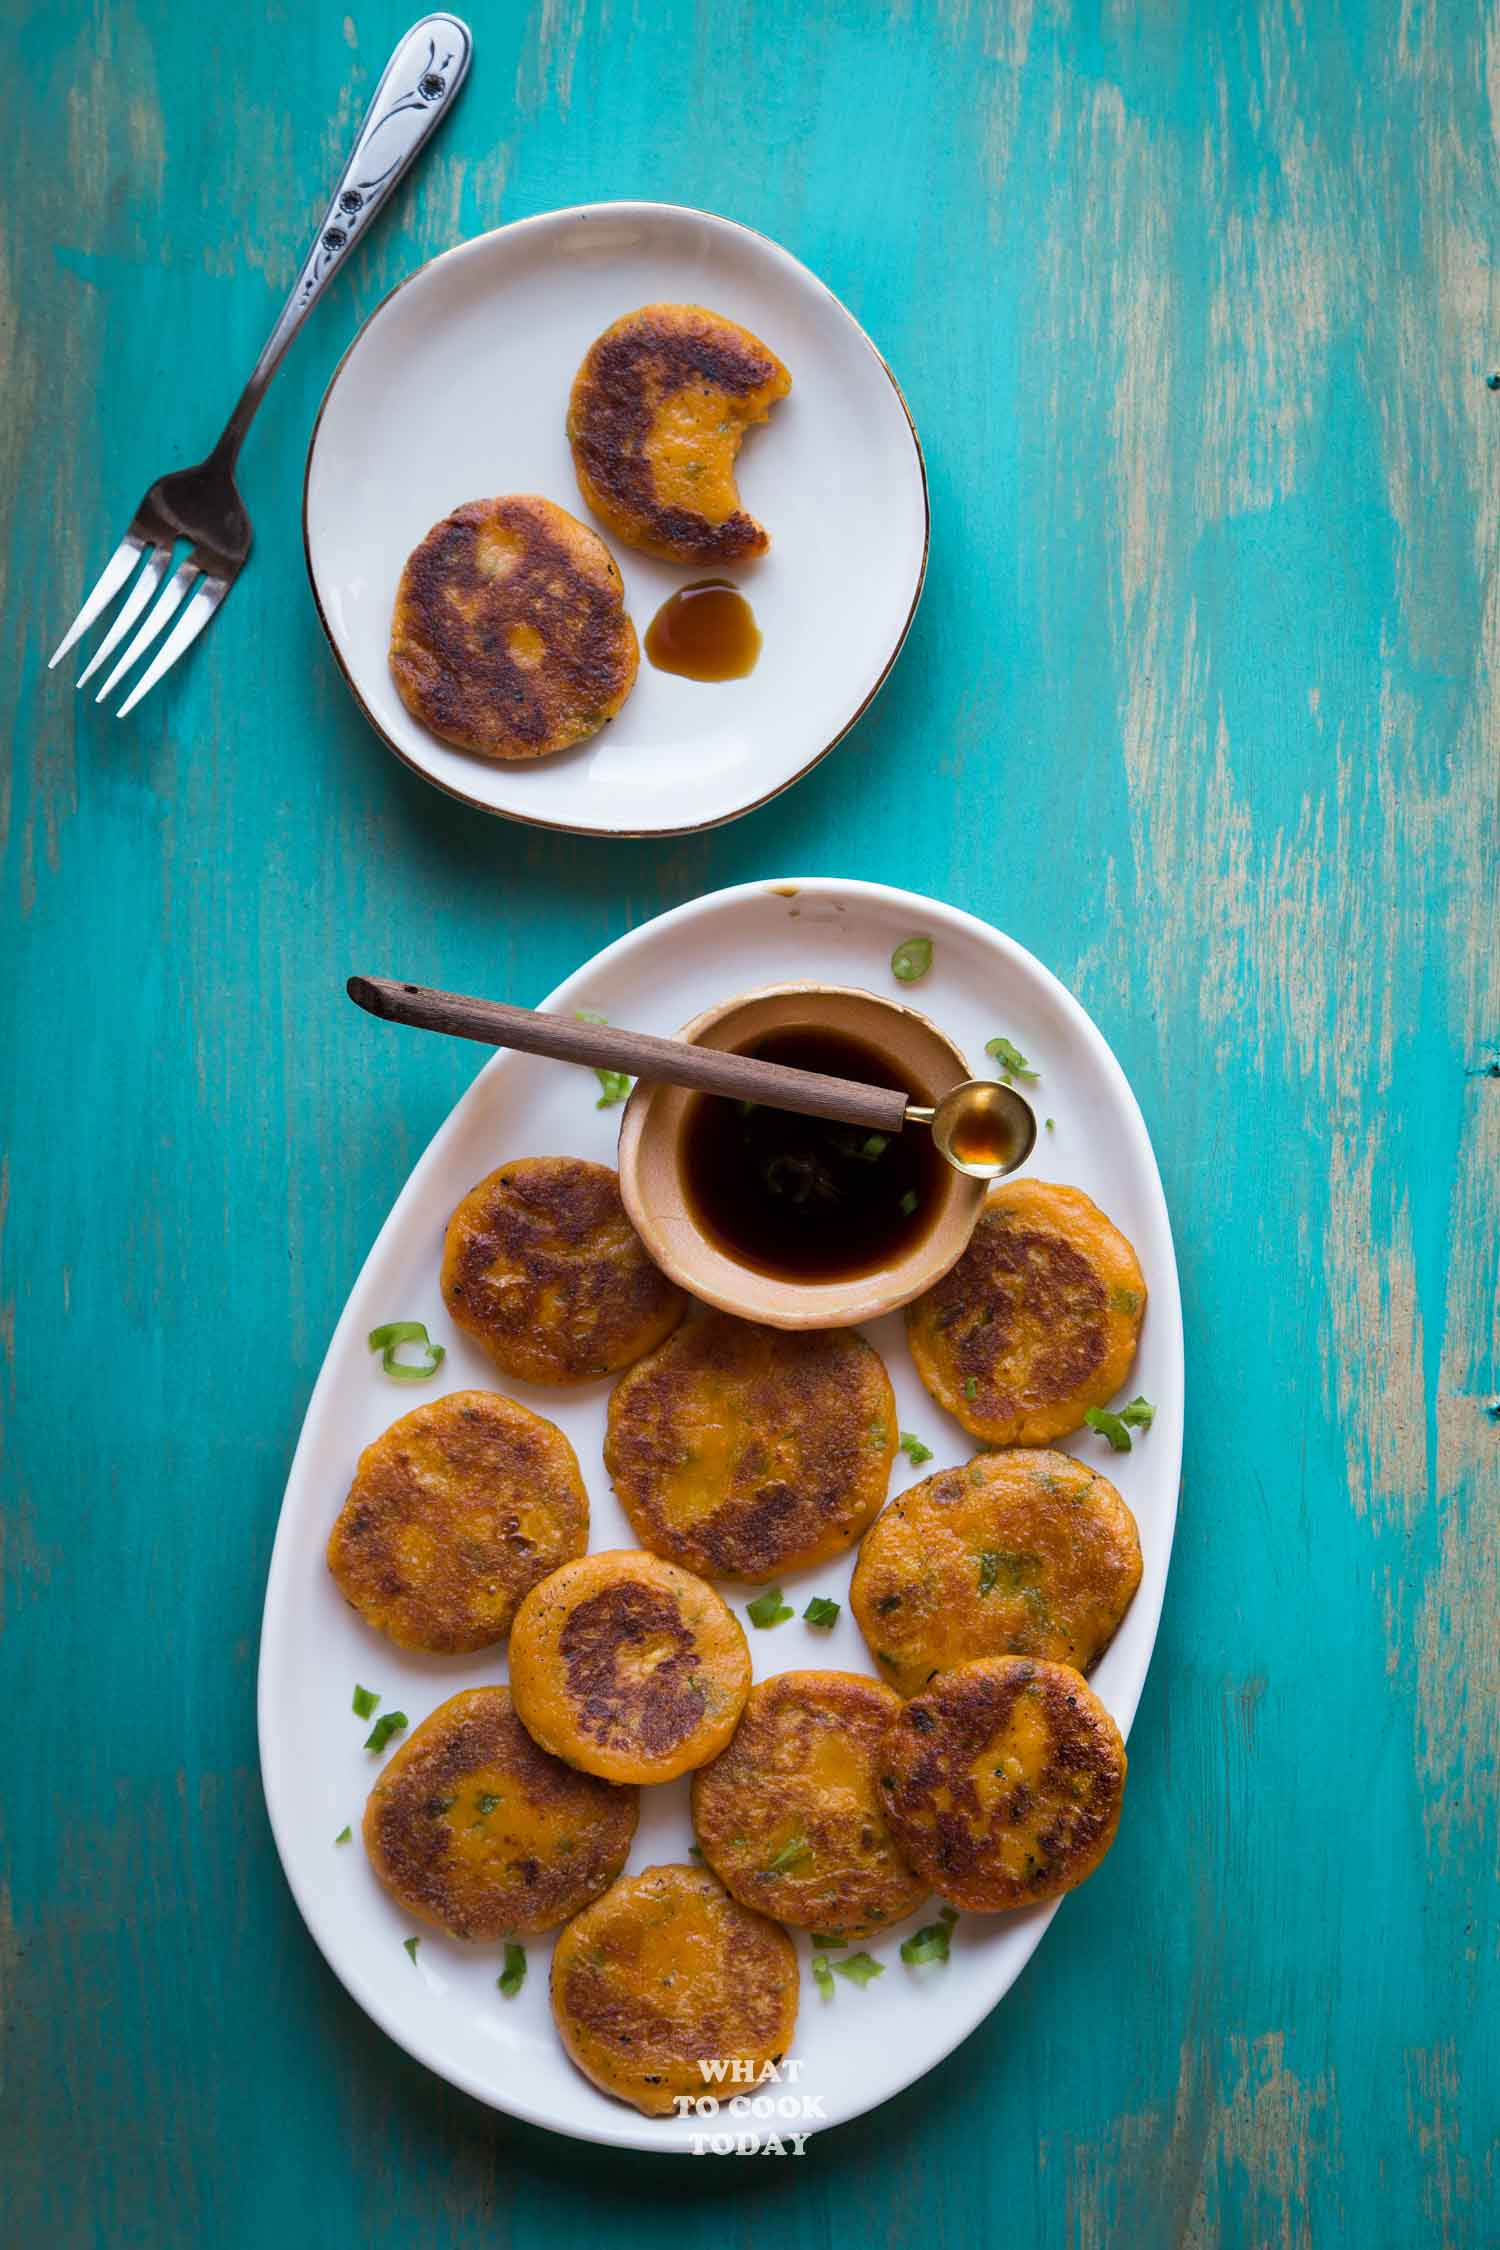 Savory Chinese Sweet Potato Pancakes #glutenfree #vegan #easyrecipe #appetizer #snack